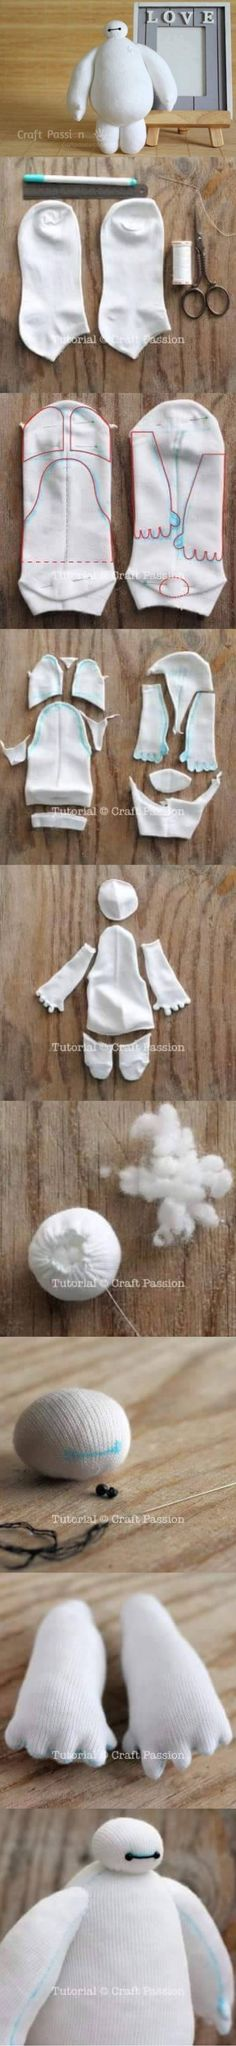 For those who are fans of Baymax and want to make them. Here, DIY Baymax from socks